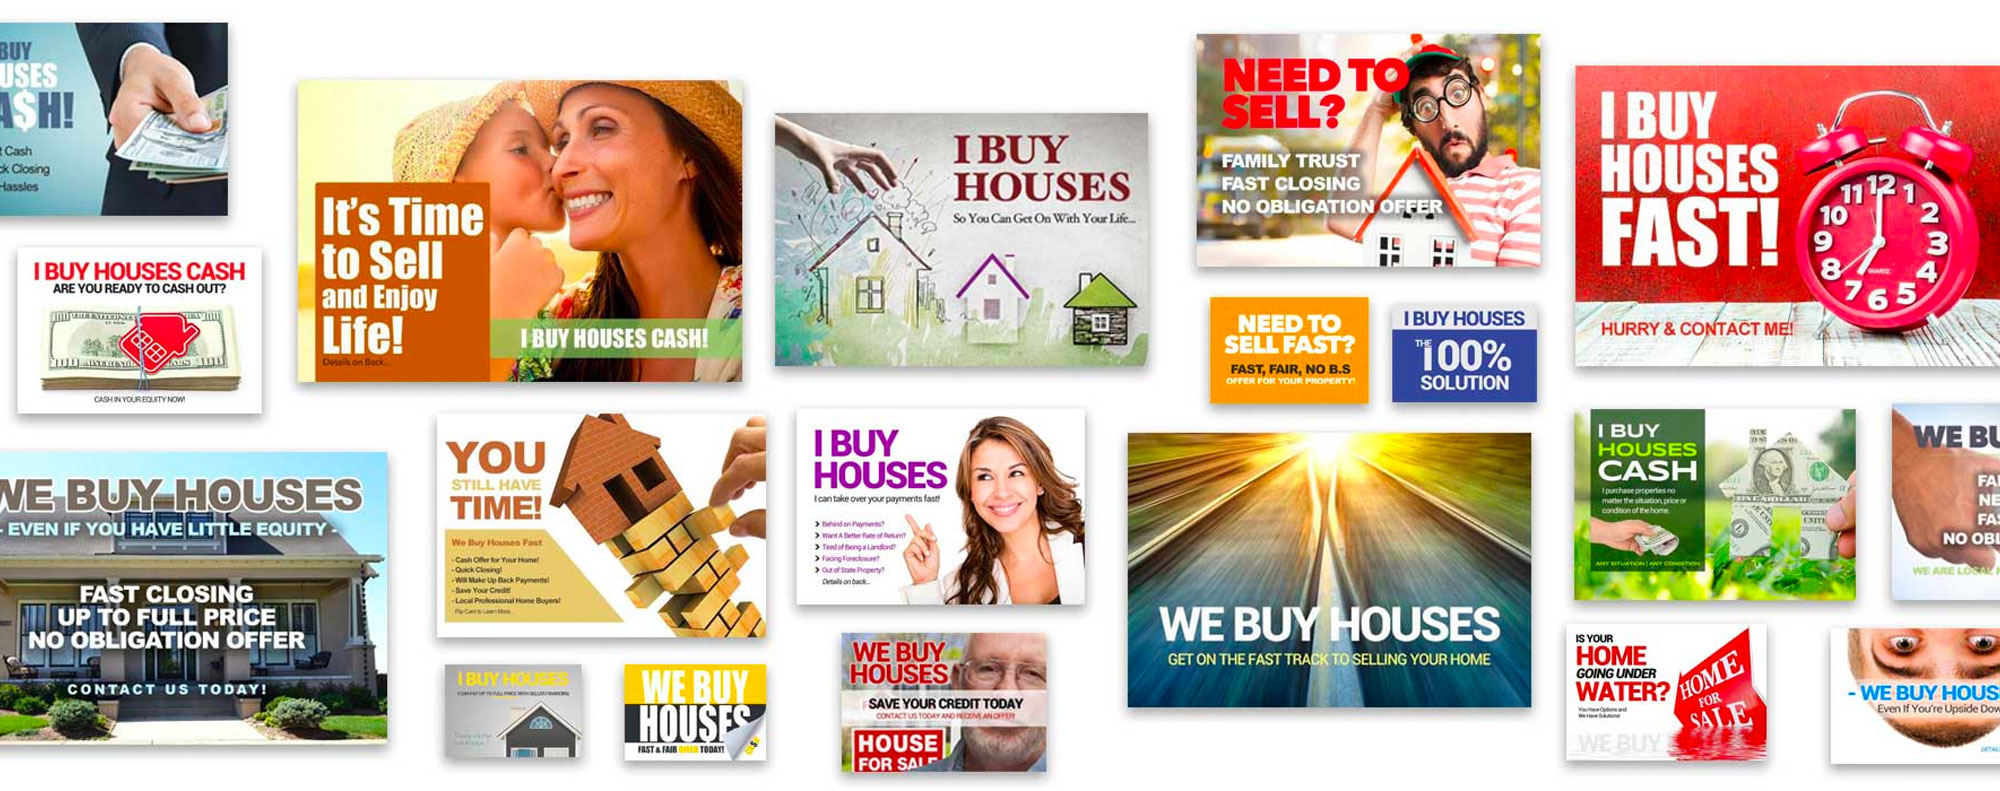 Direct Mail Postcards For Real Estate Investors and Real